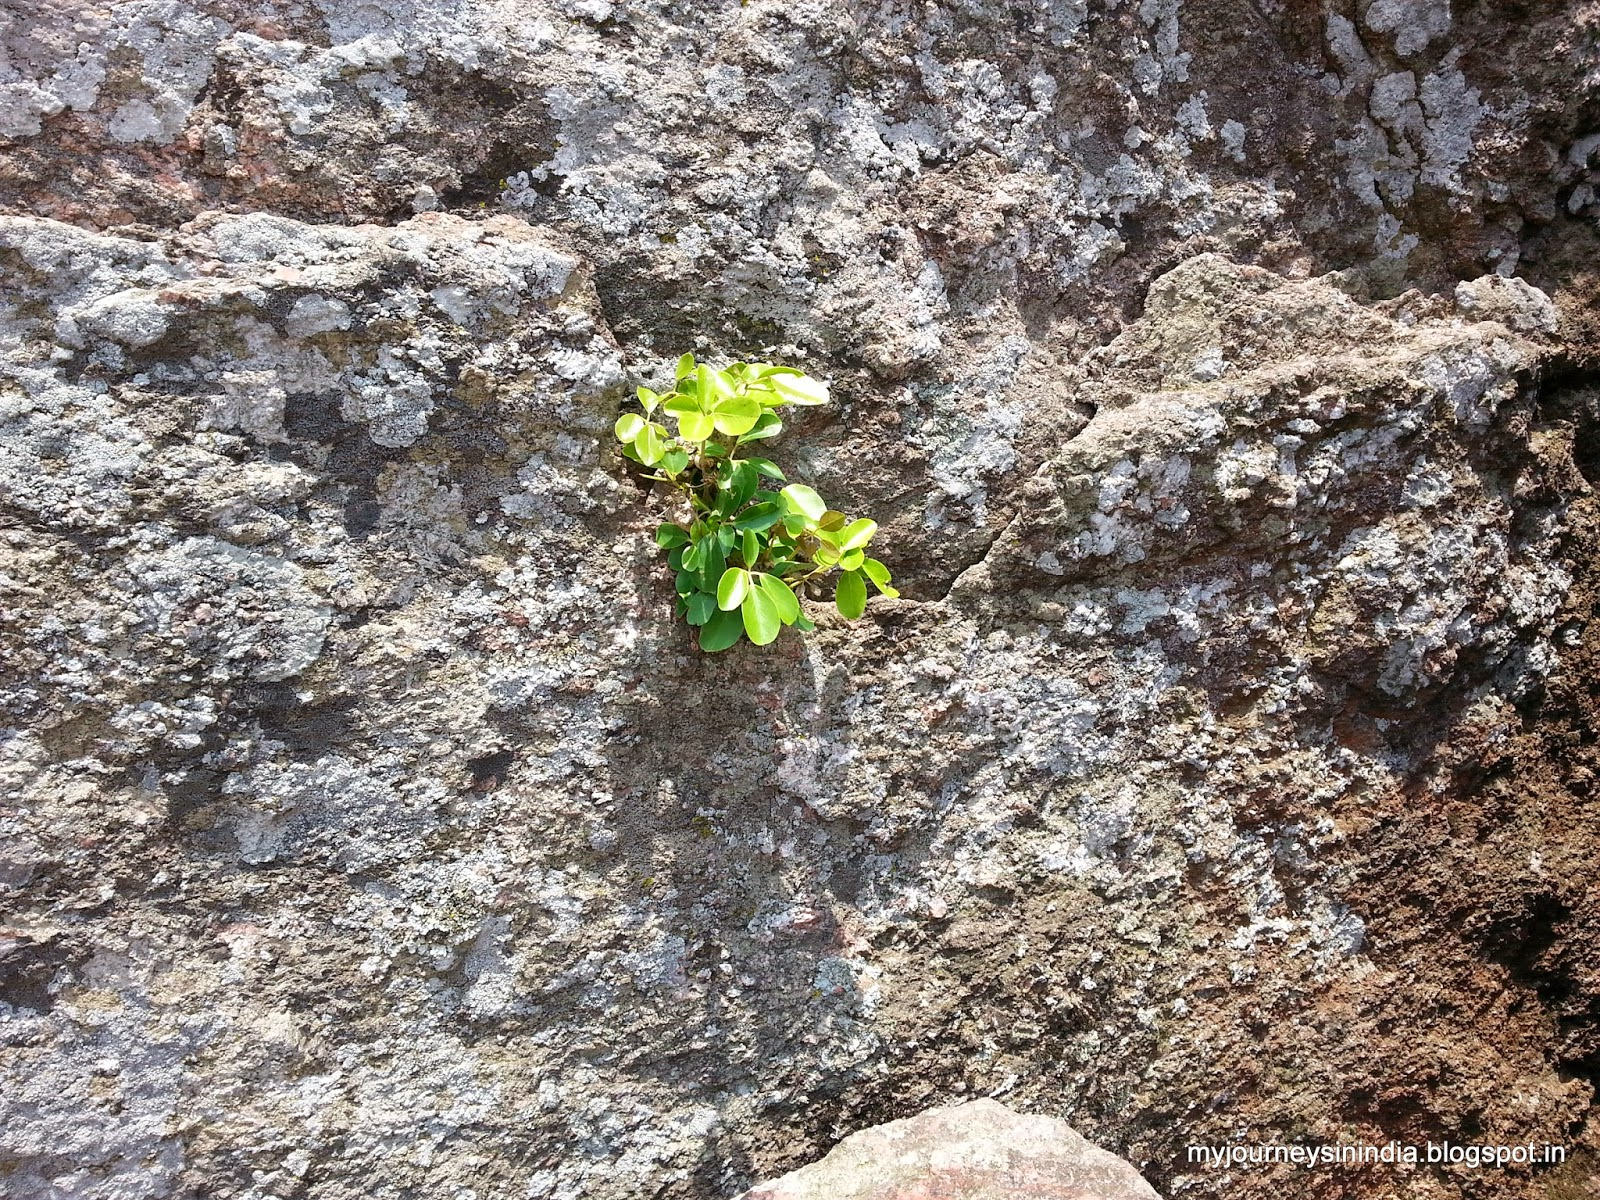 Trees growing on rocks - Shivagange